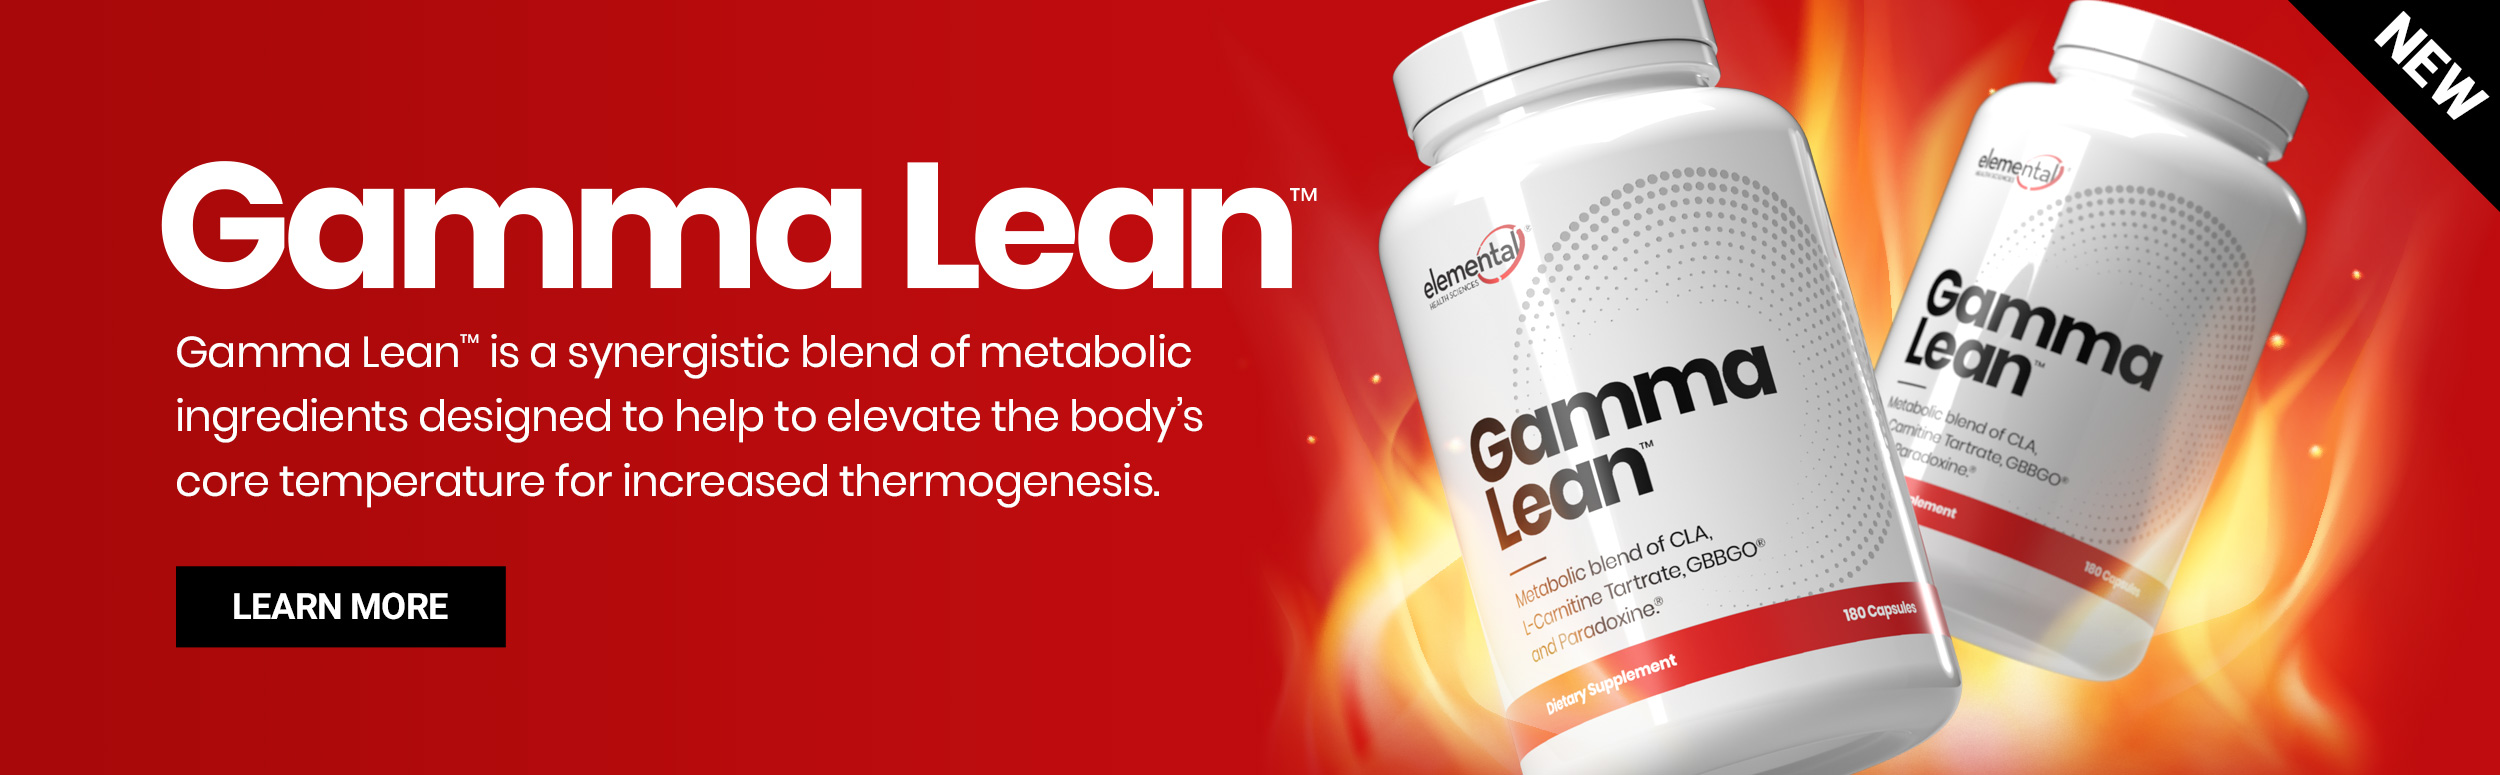 elemental - Gamma Lean - Click to learn more